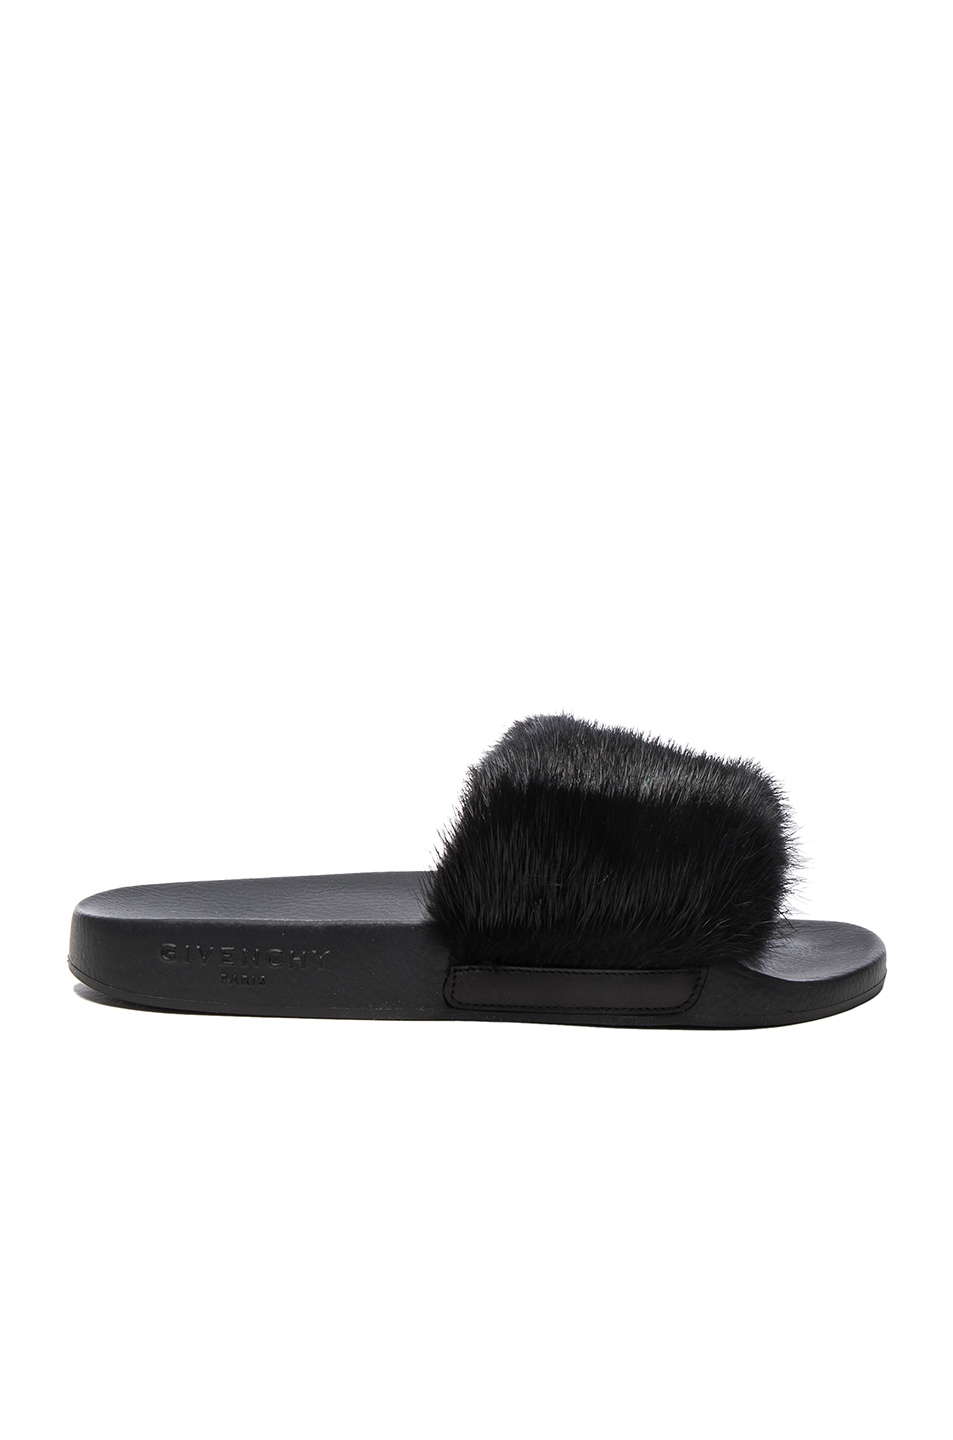 588d587bac5d Givenchy Mink Fur Slides  Givenchy Mink Fur Slides ...